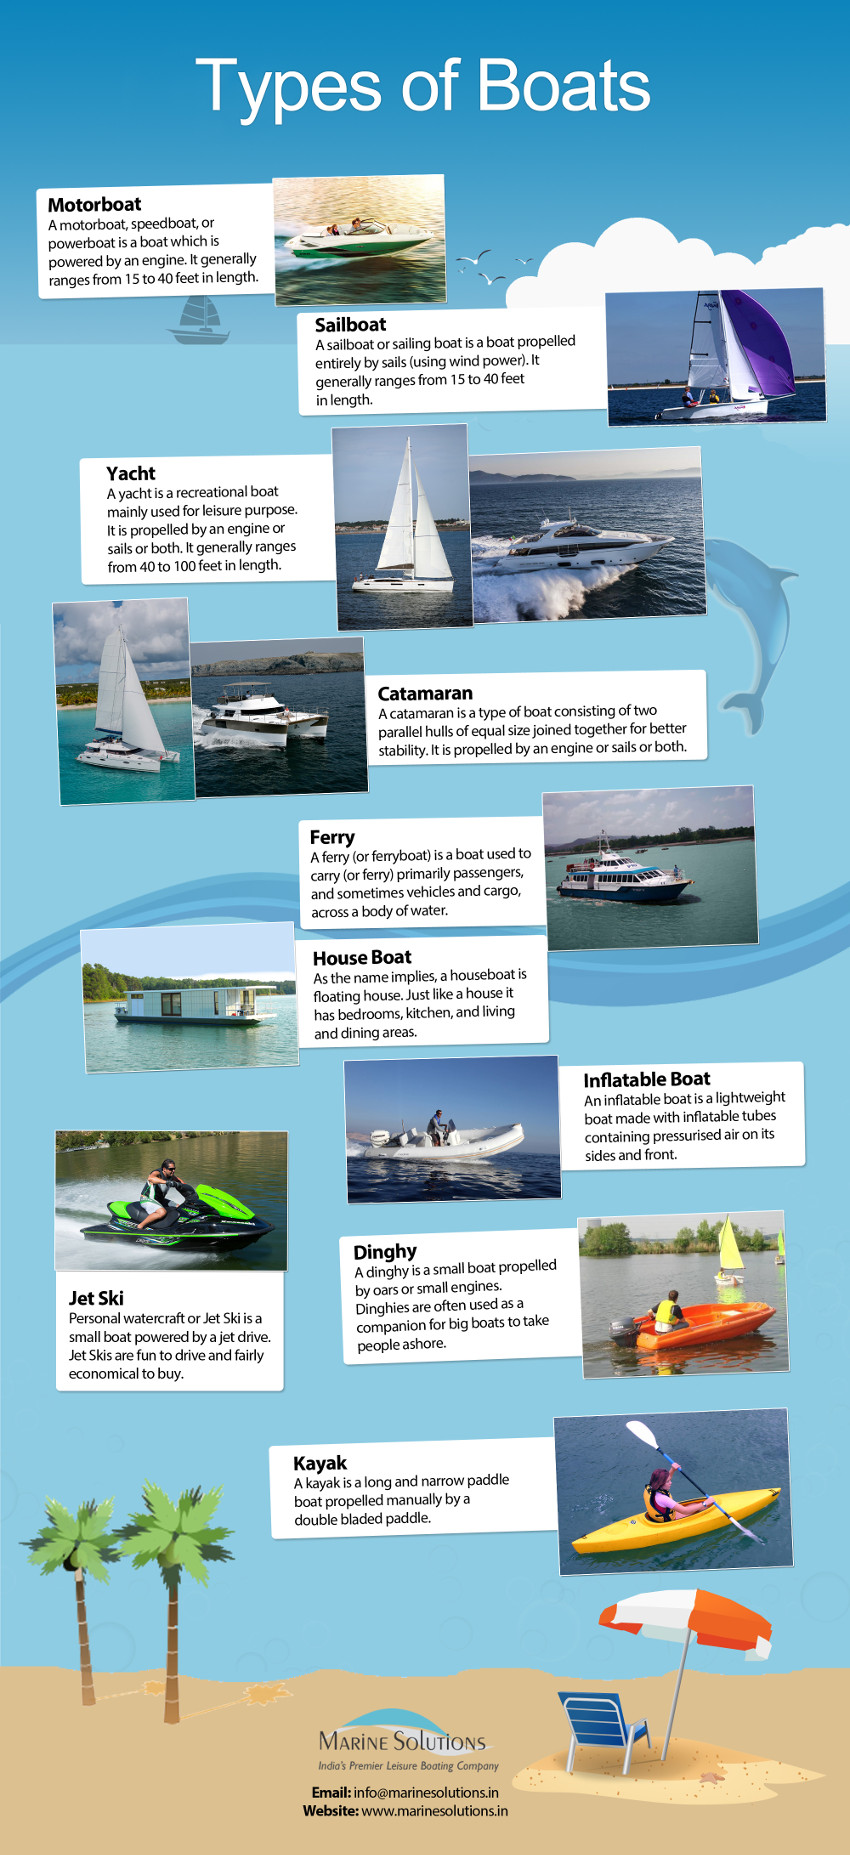 Types of Boats Infographic